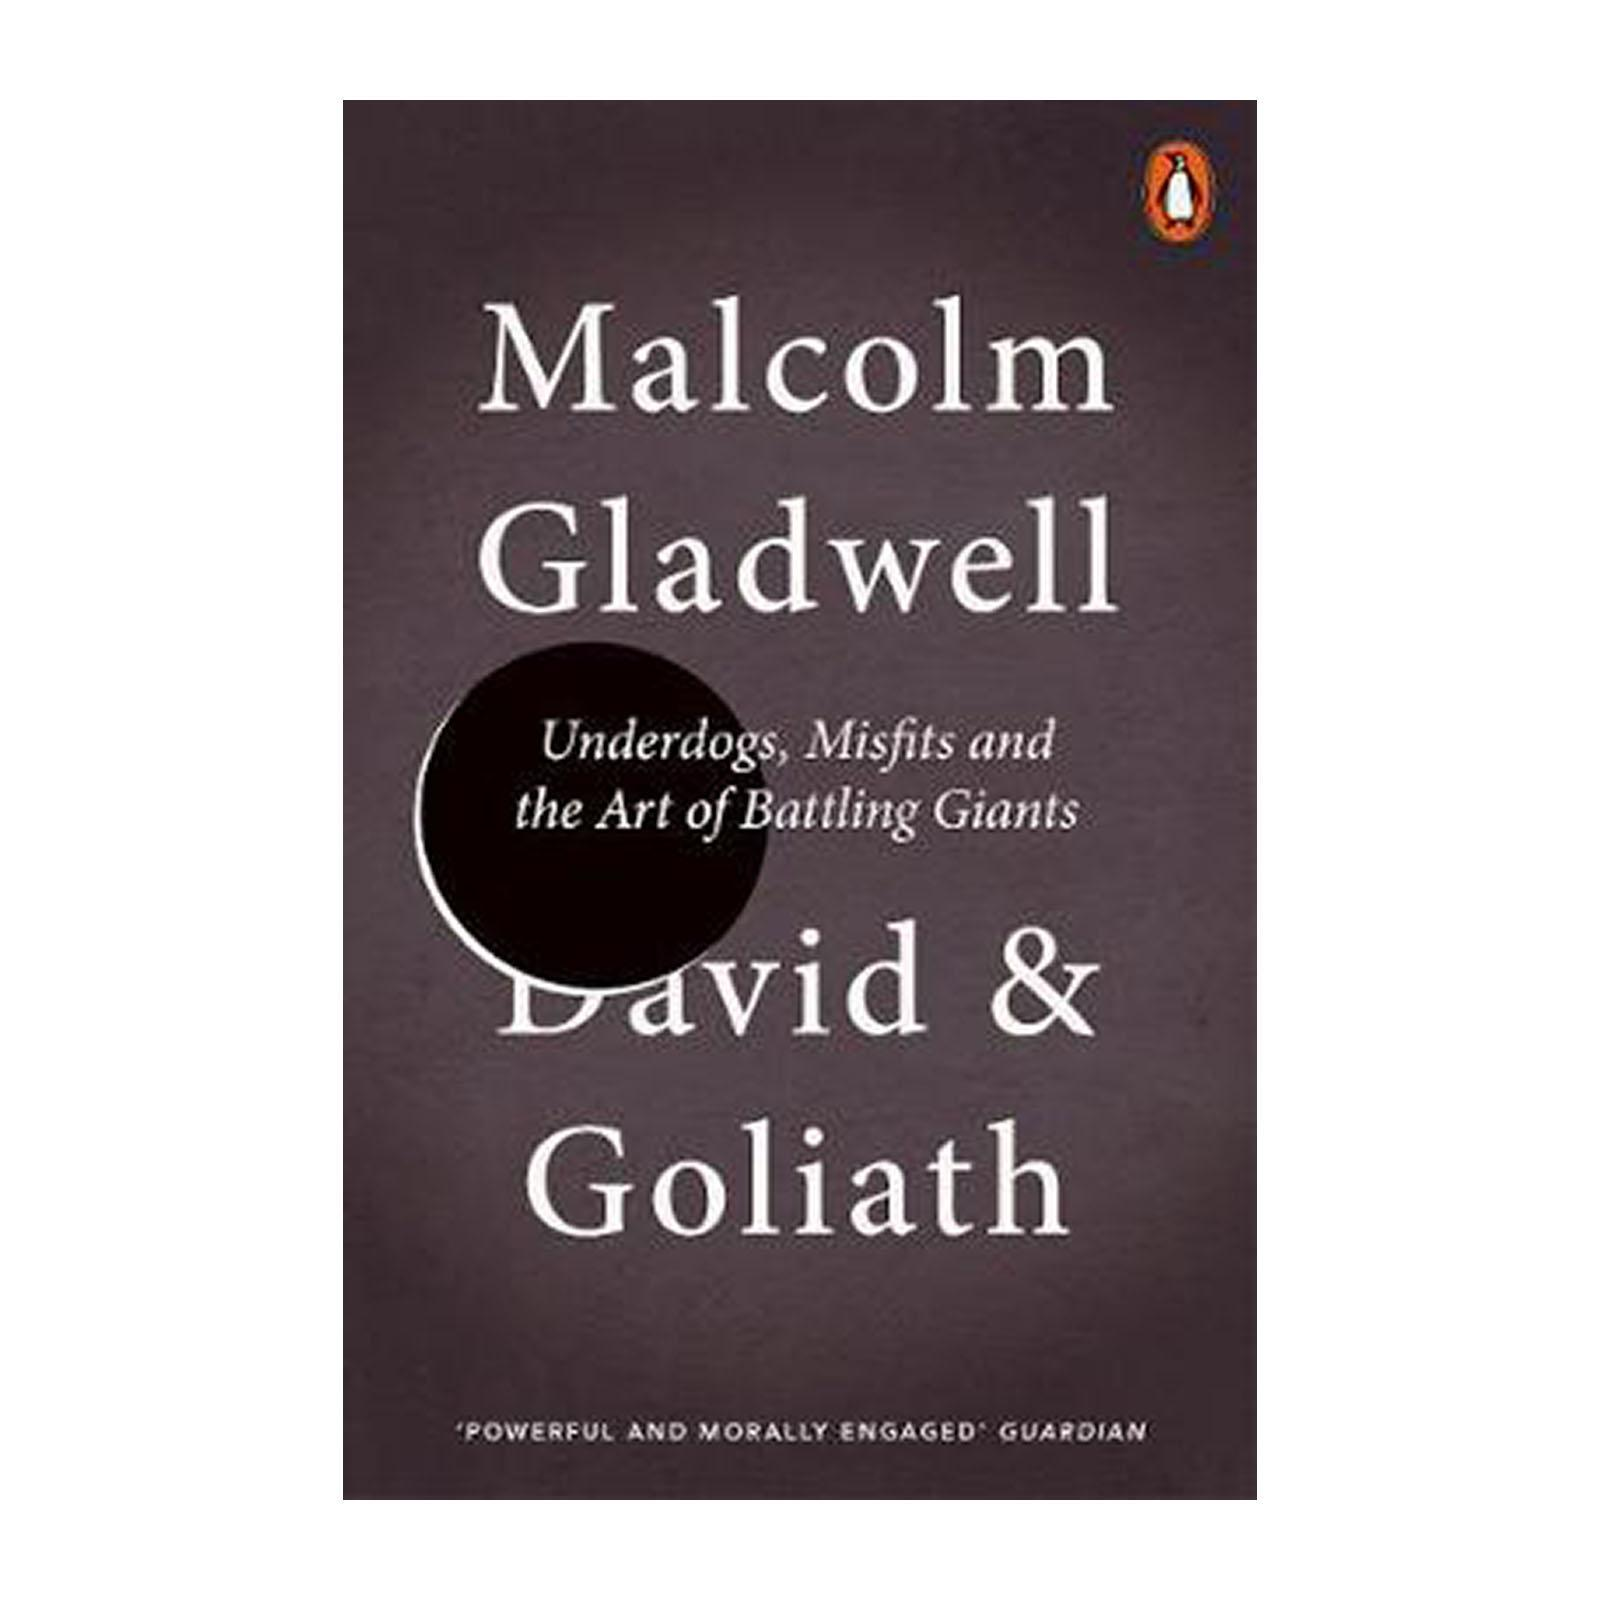 David And Goliath: Underdogs And Misfits And The Art Of Battling Giants (Paperback)